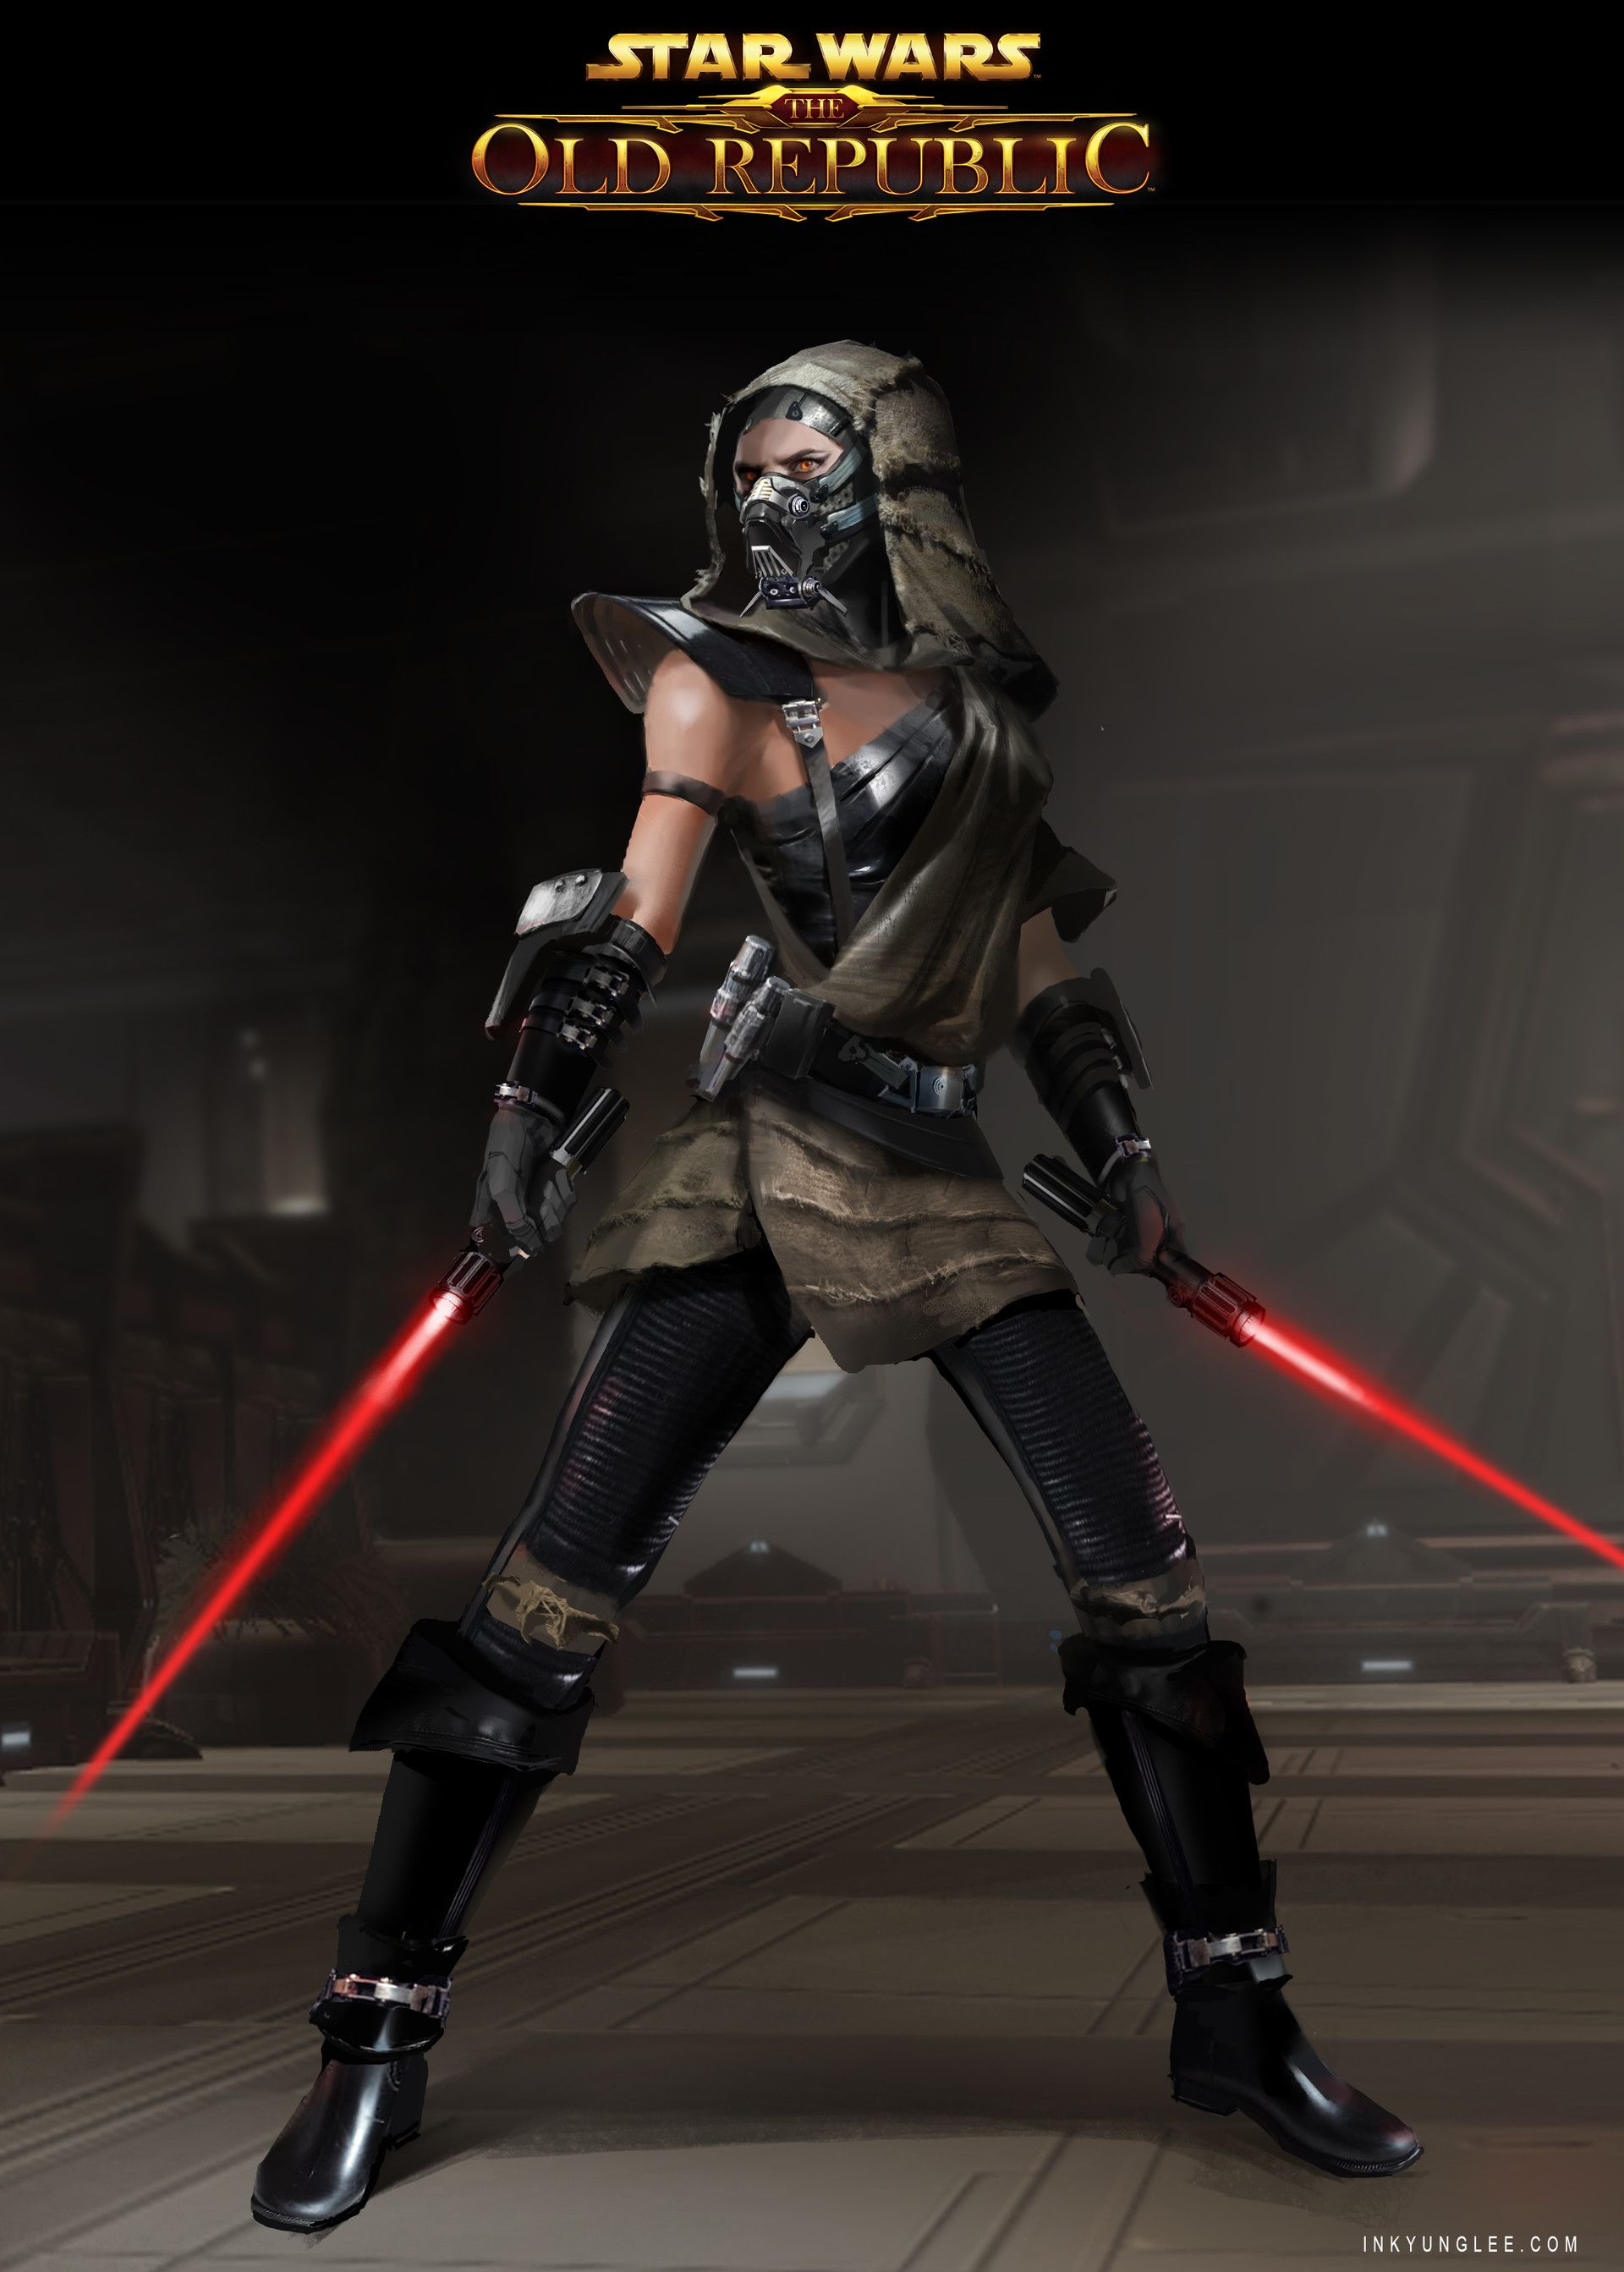 Sith Warrior Female by GiorgioEspinos on DeviantArt